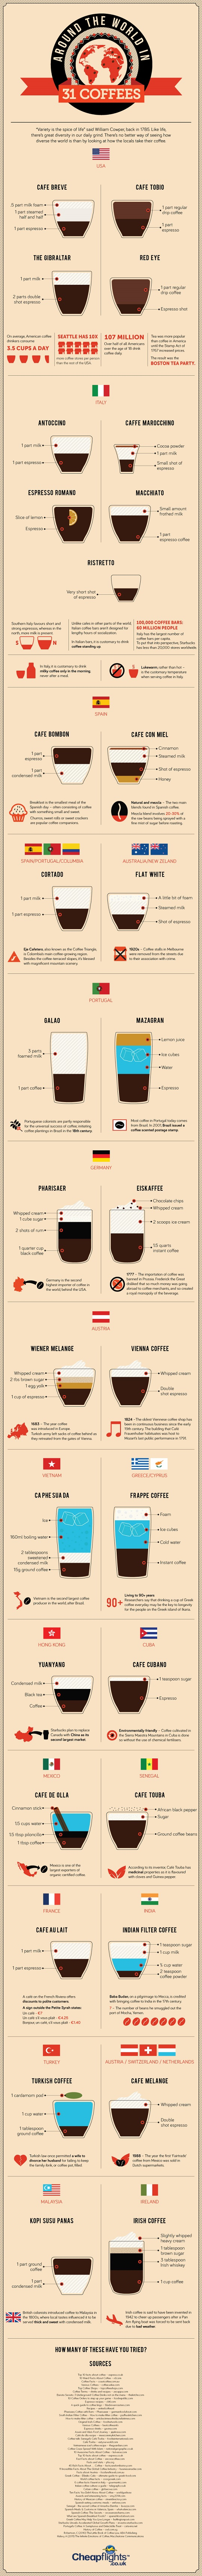 31 Coffees from Across the Globe [Infographic]